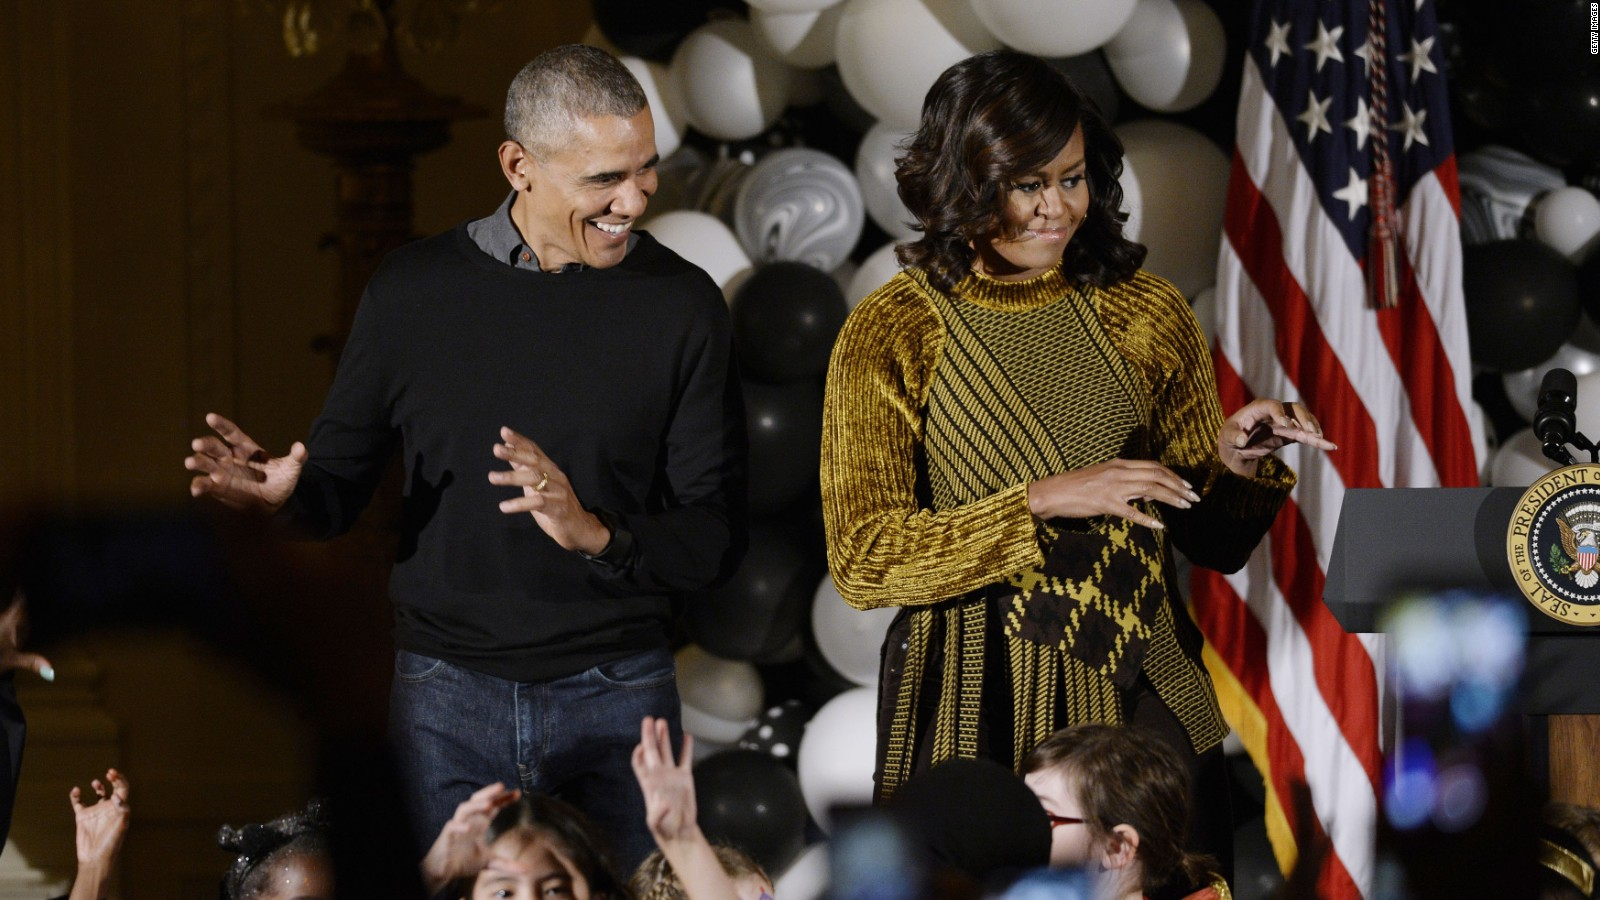 Obamas dance to 'Thriller' at White House Halloween - CNN Video